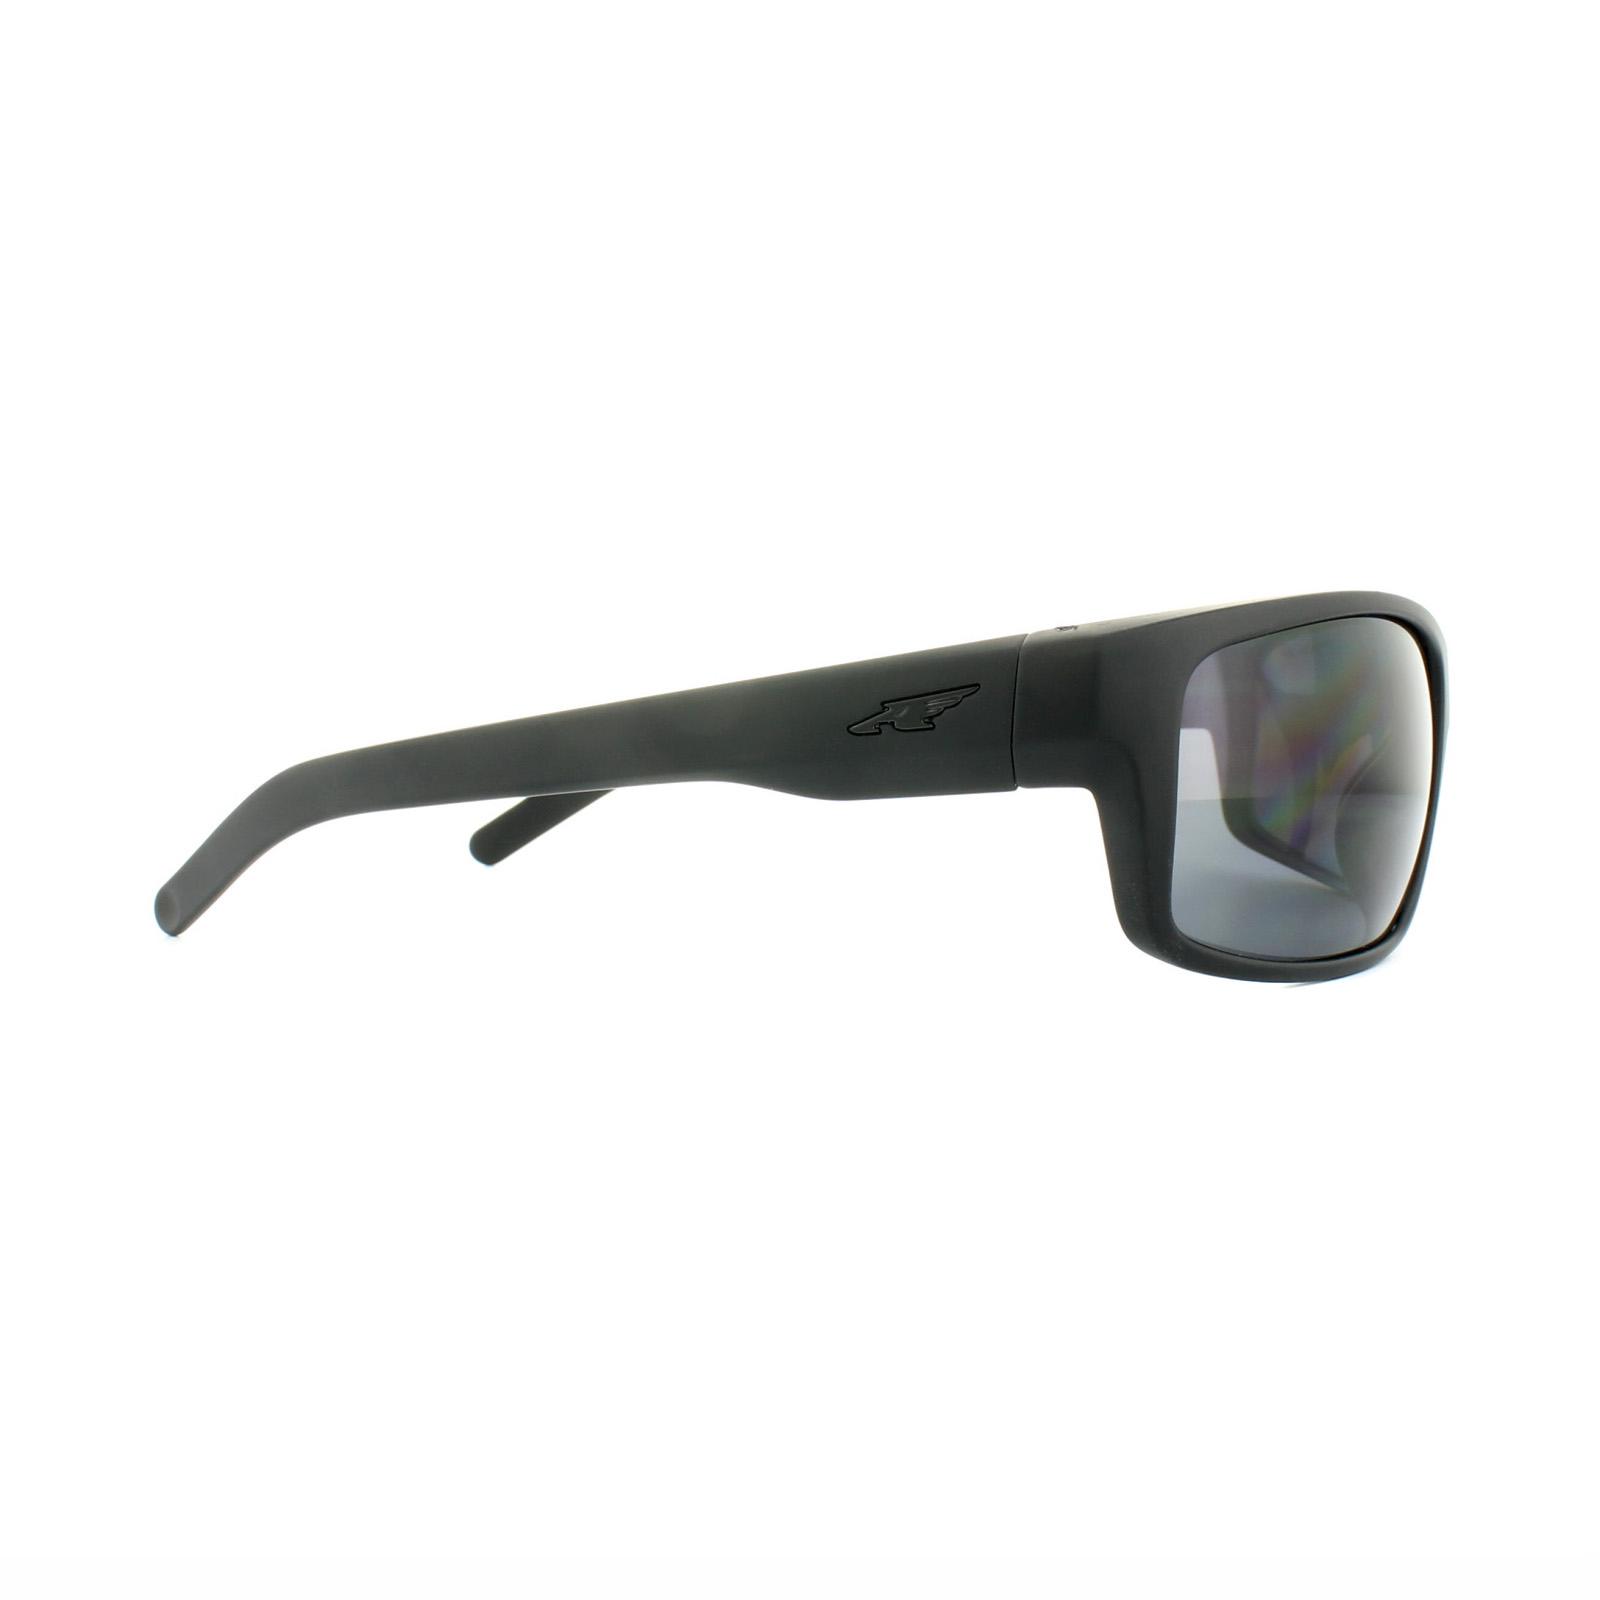 530d8f5a5af51 Sentinel Arnette Sunglasses Fastball 4202 447 81 Fuzzy Black Grey Polarized